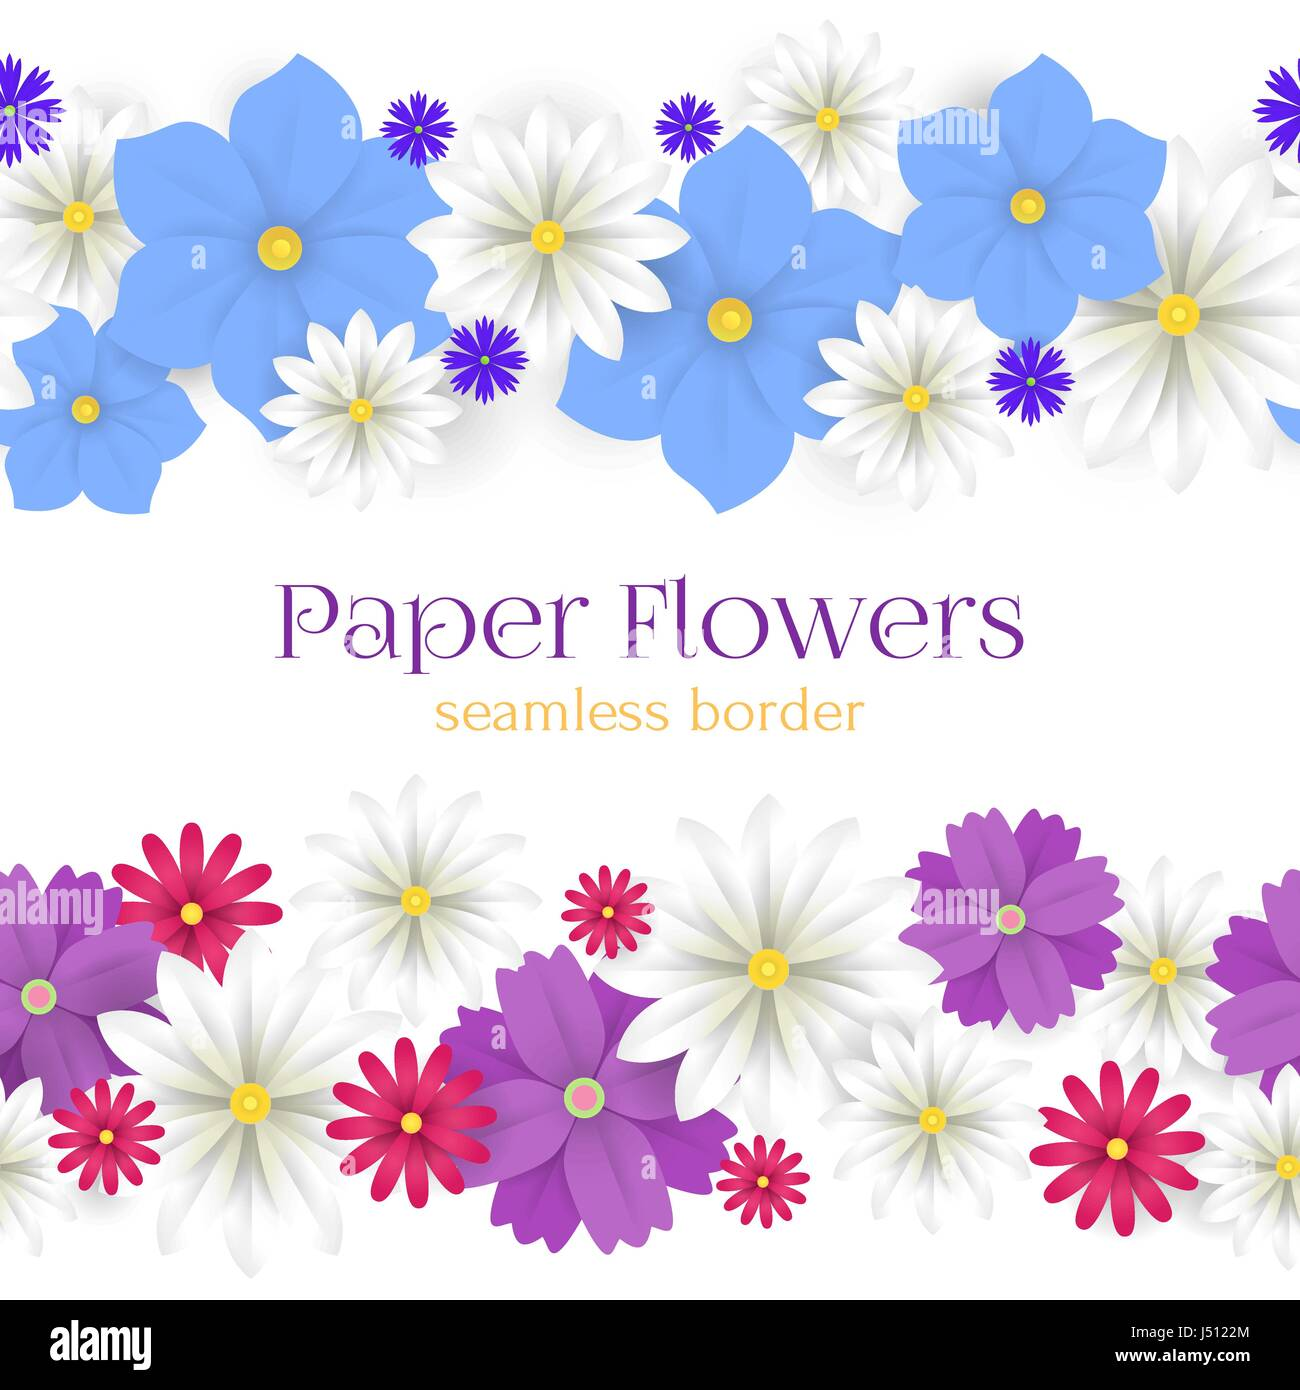 Colorful Vector Paper Flowers Horizontal Seamless Borders Stock